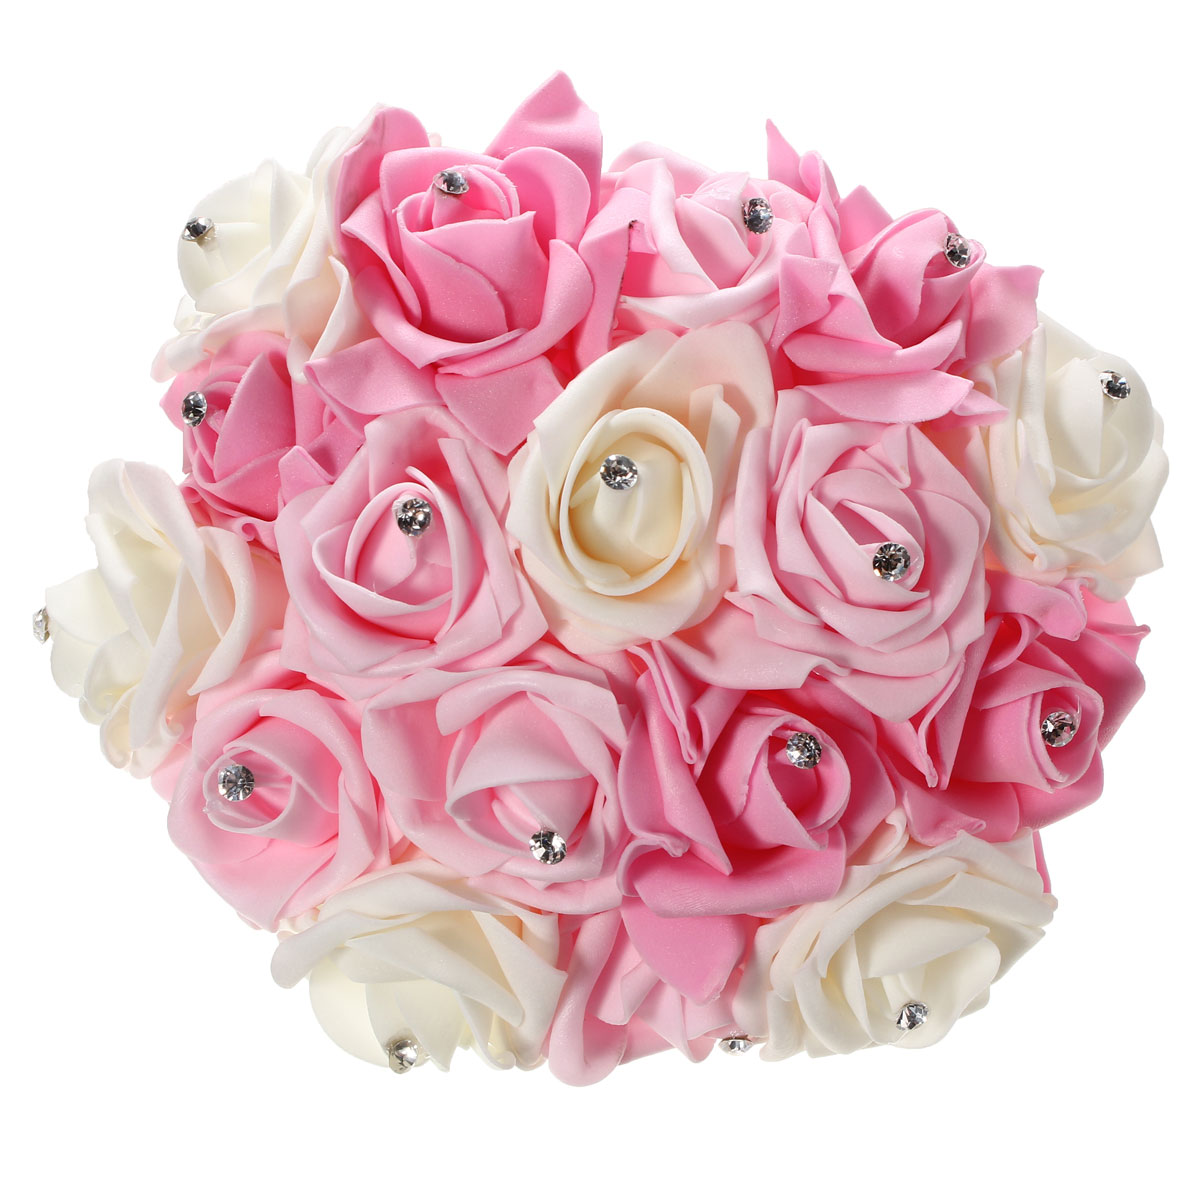 30cm / 11.8'' Crystal Foam Flower Roses Wedding Bridal Bridesmaid Bouquet Posy